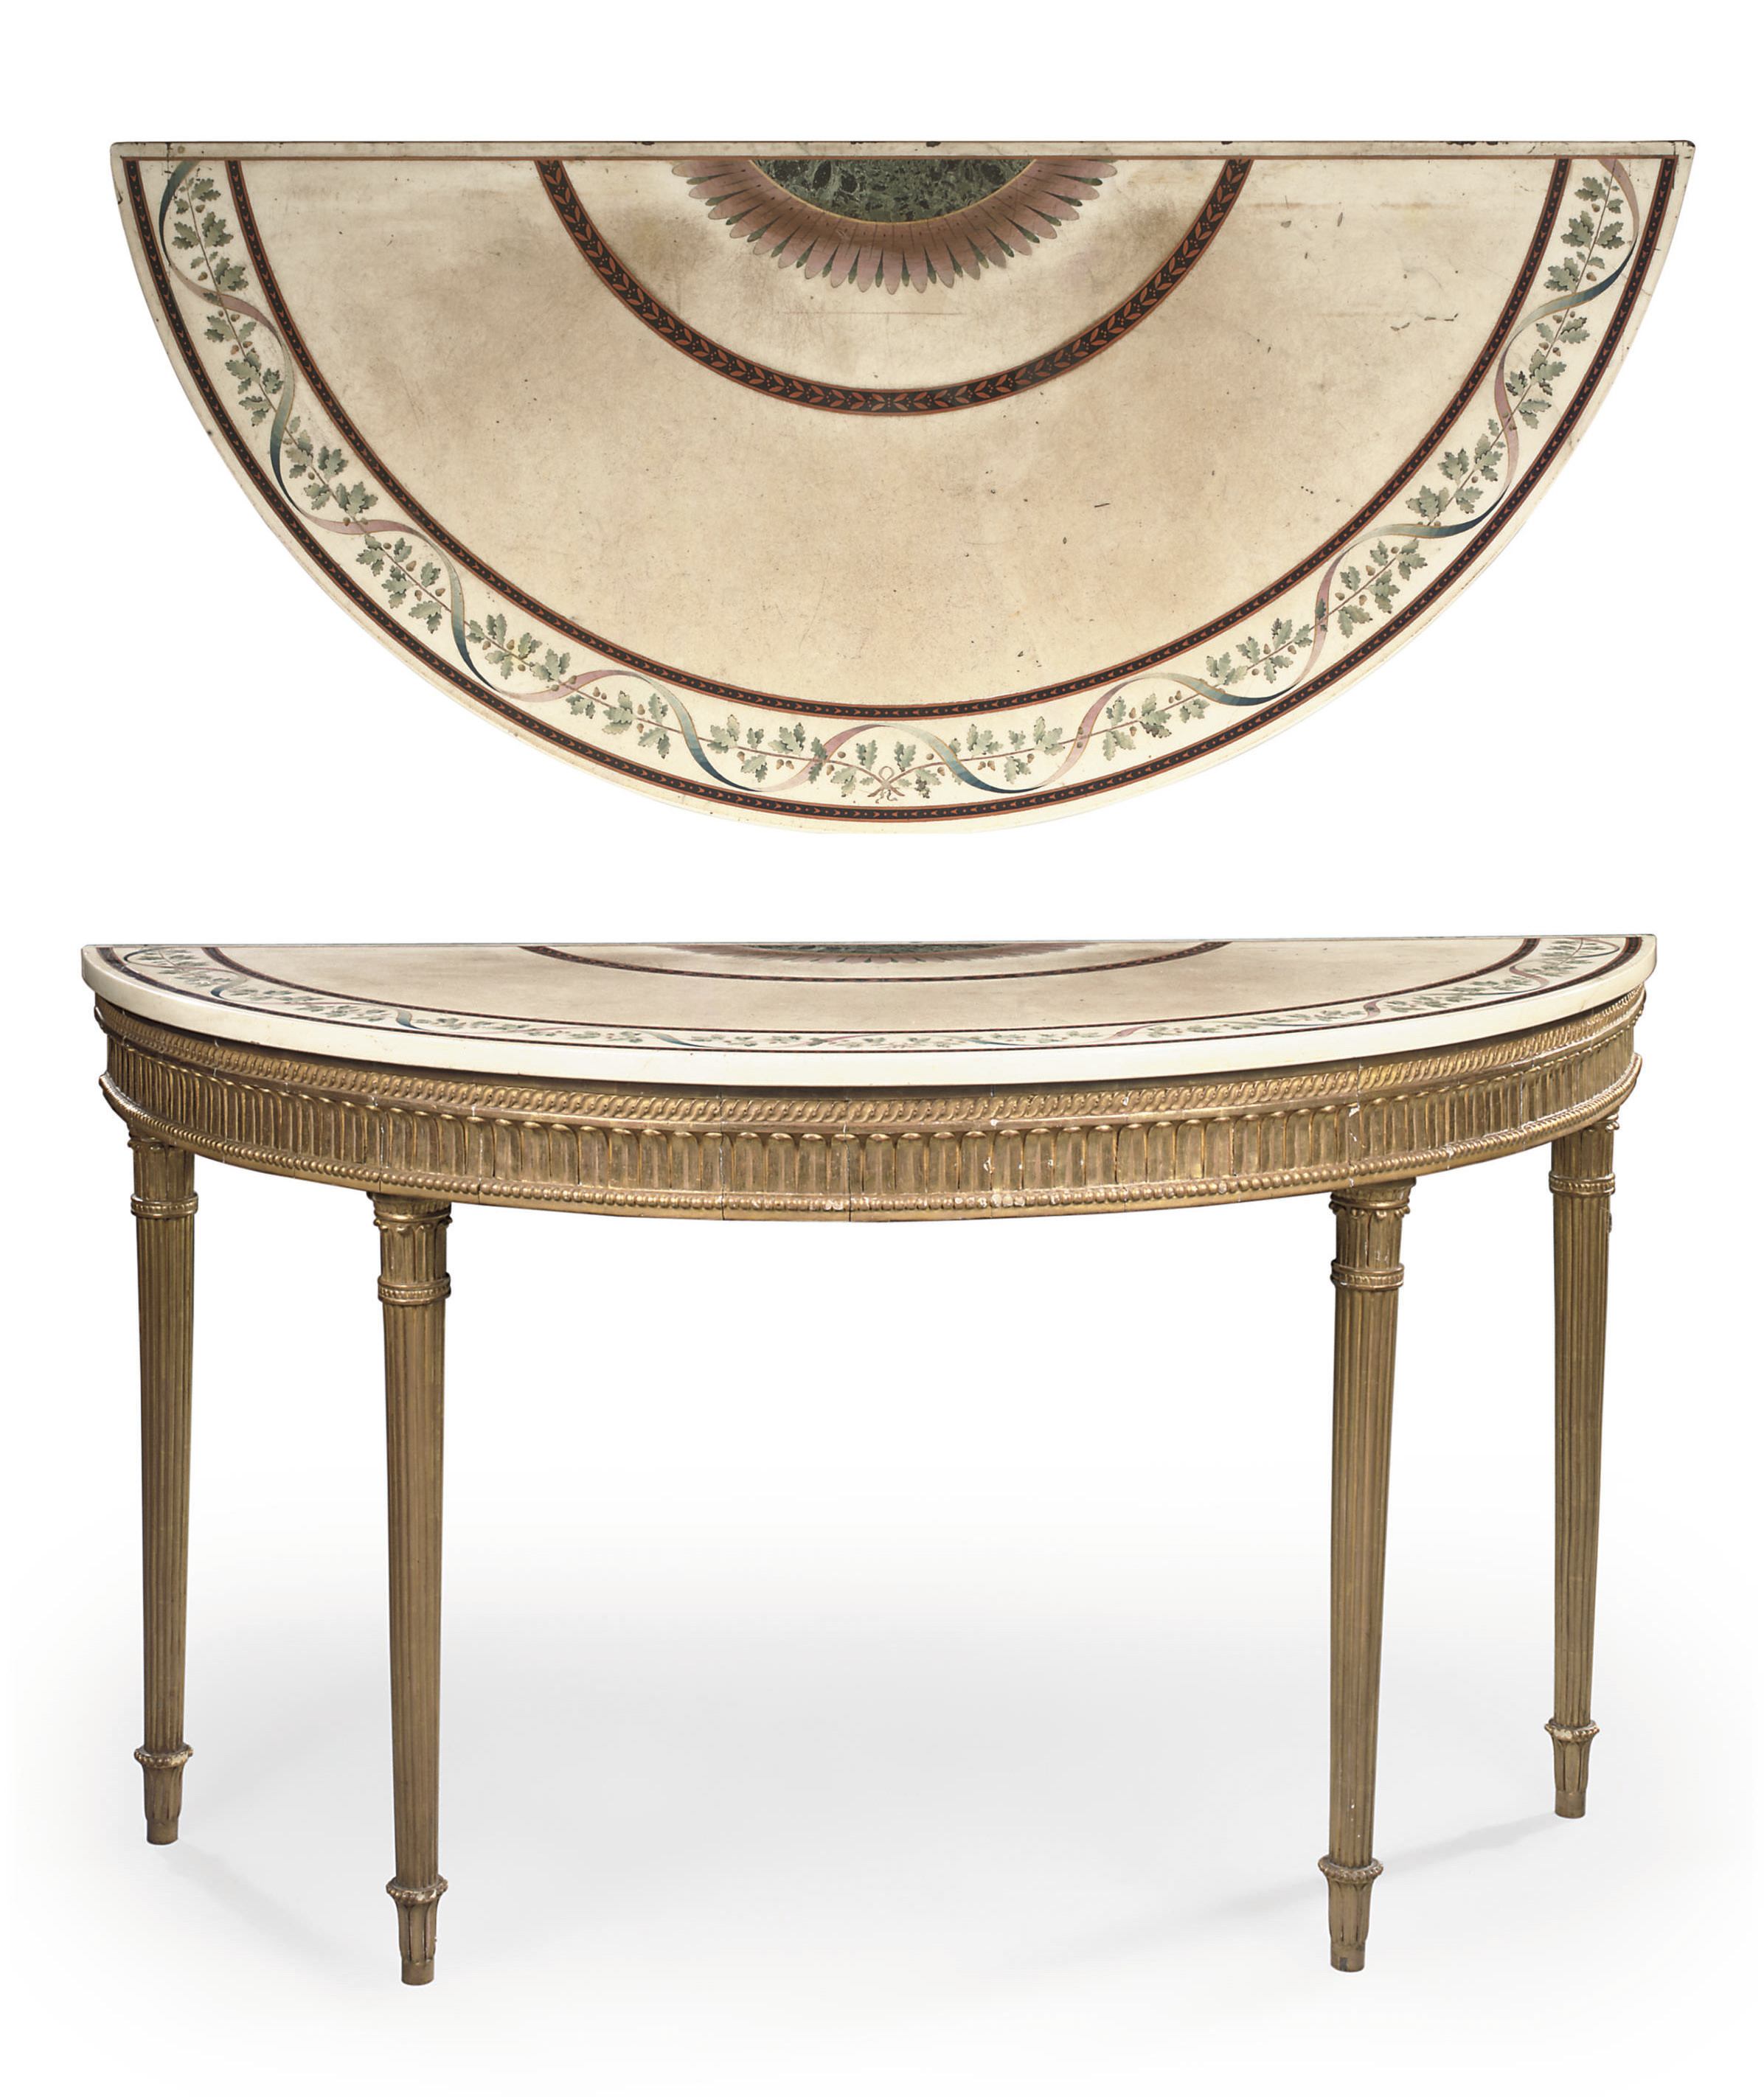 A GEORGE III GILTWOOD AND SCAG